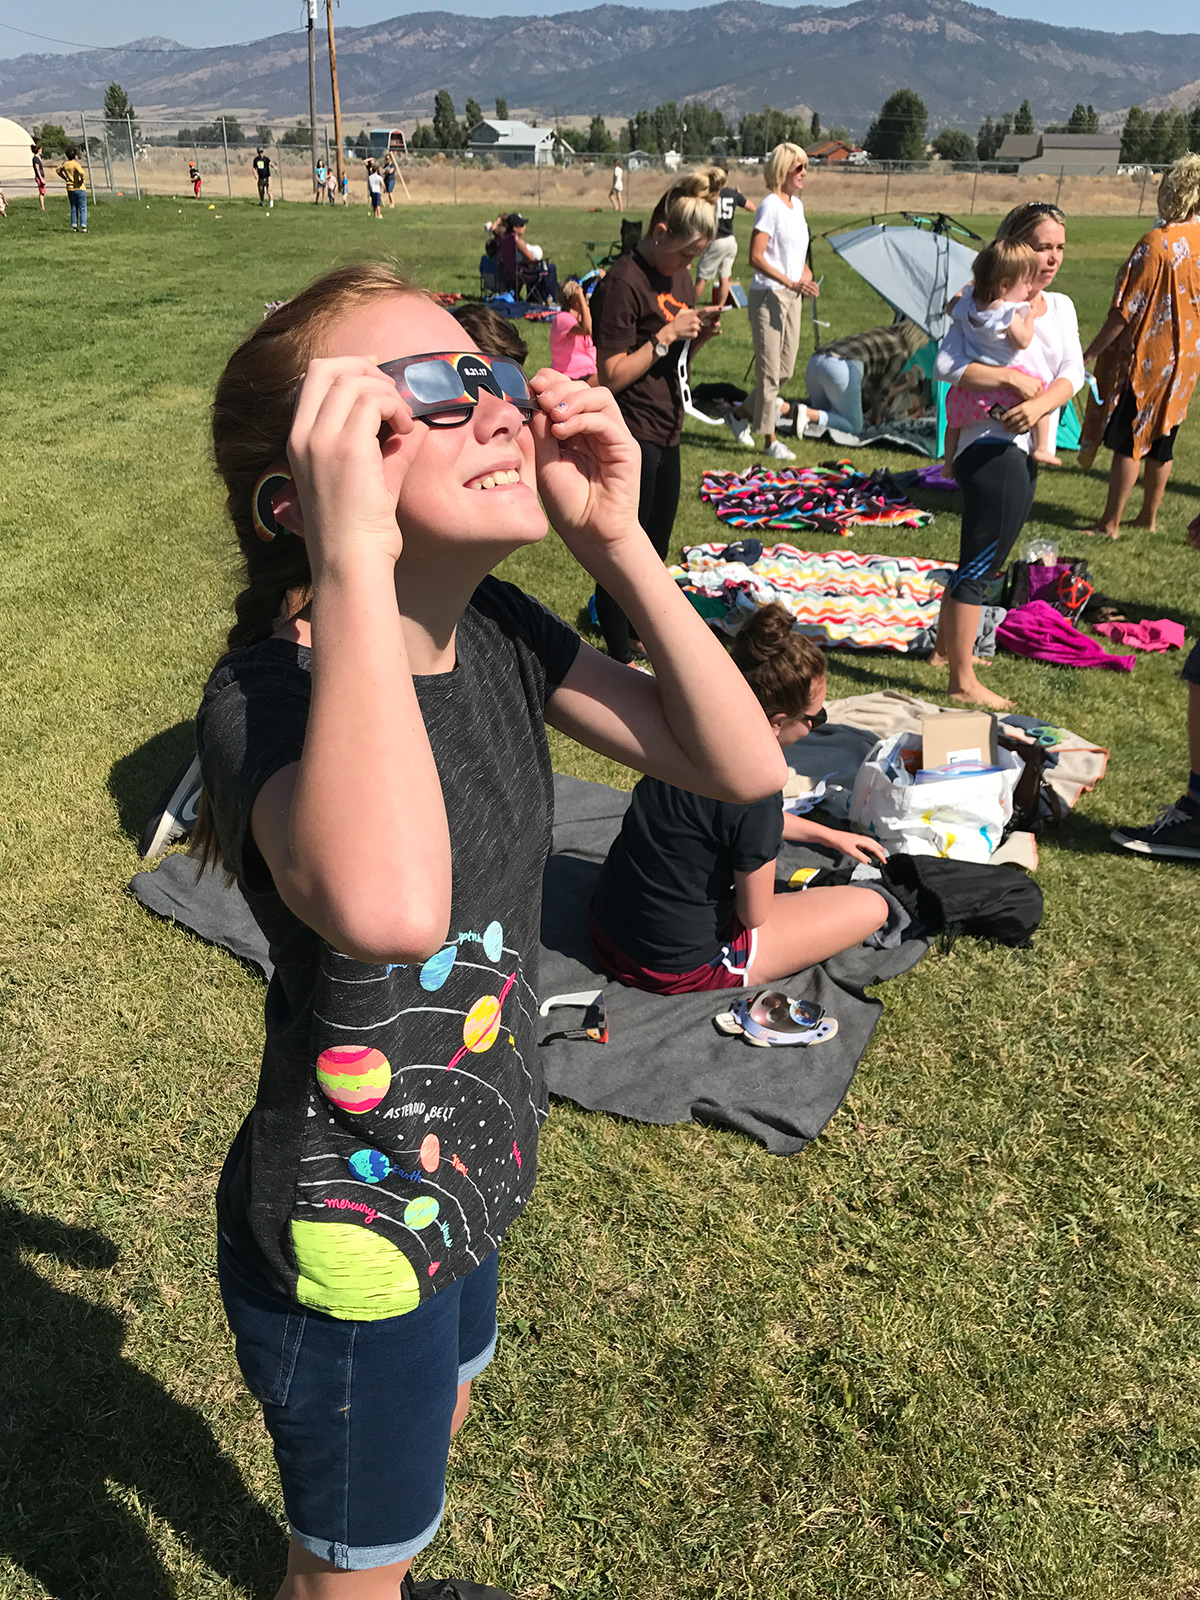 A girl watches the solar eclipse through eclipse glasses.